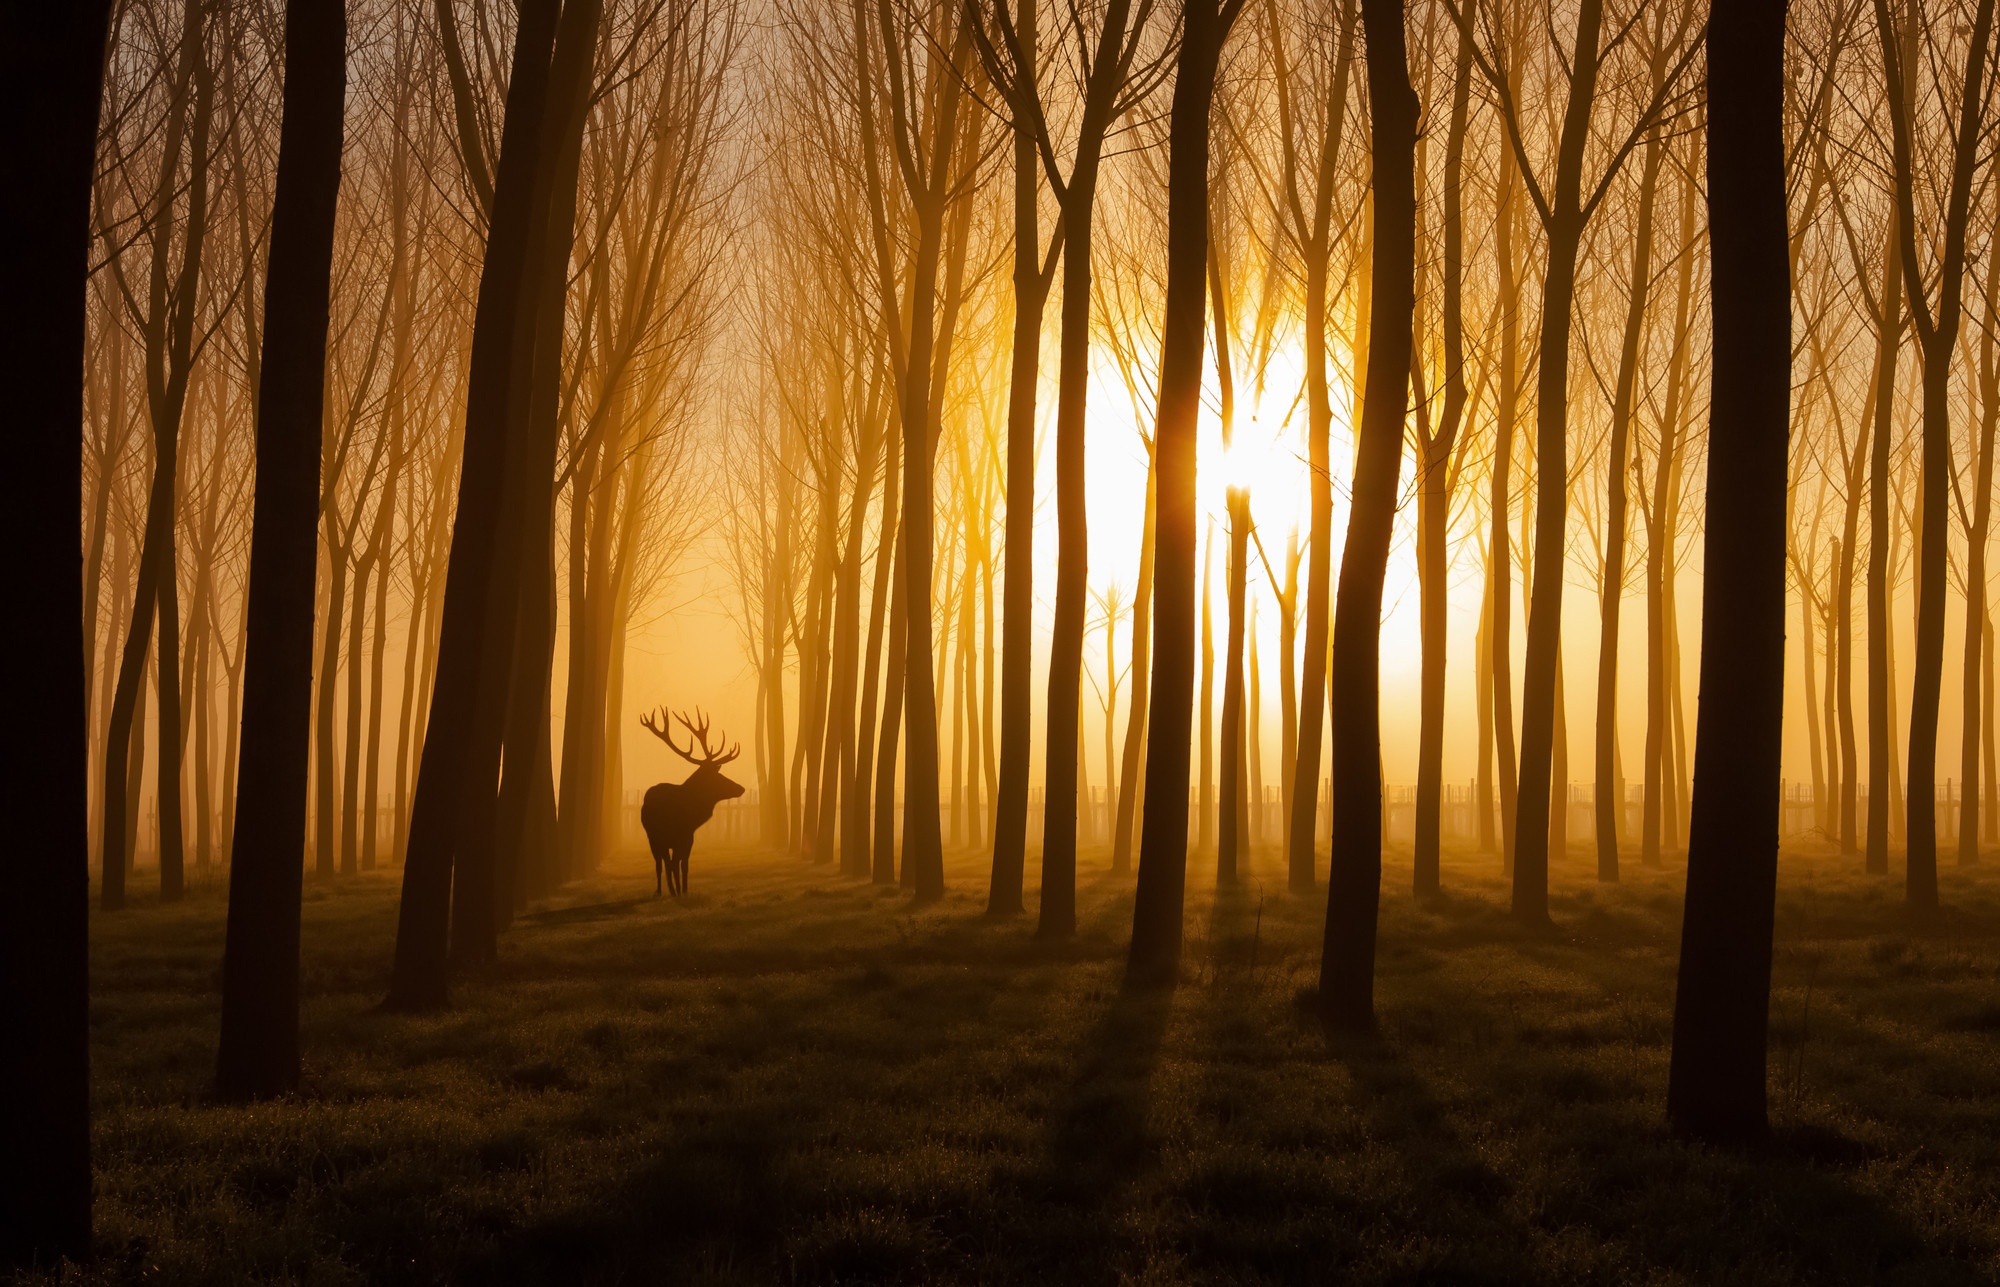 Forest Stag Mural Wallpaper